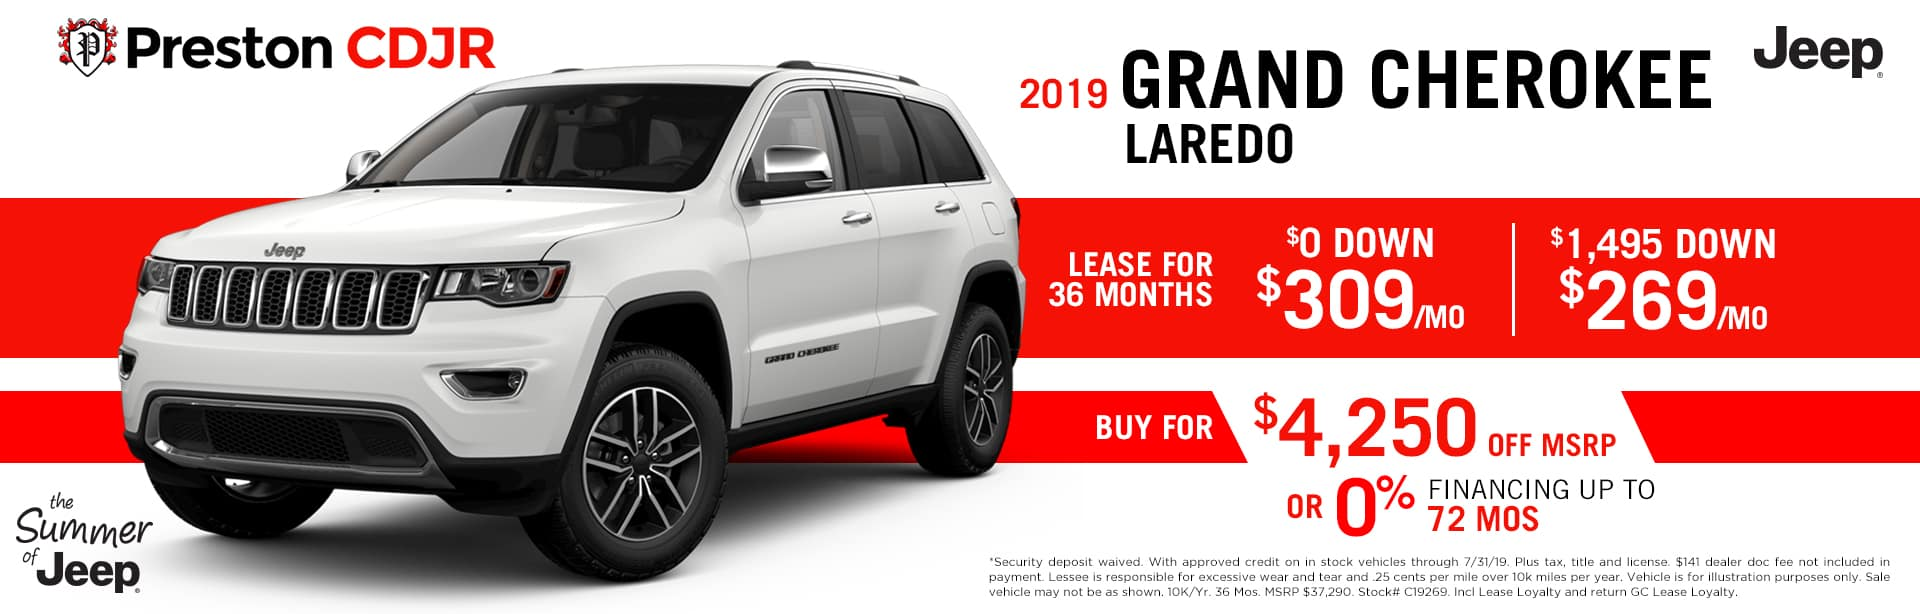 July special on 2019 Jeep Grand Cherokee